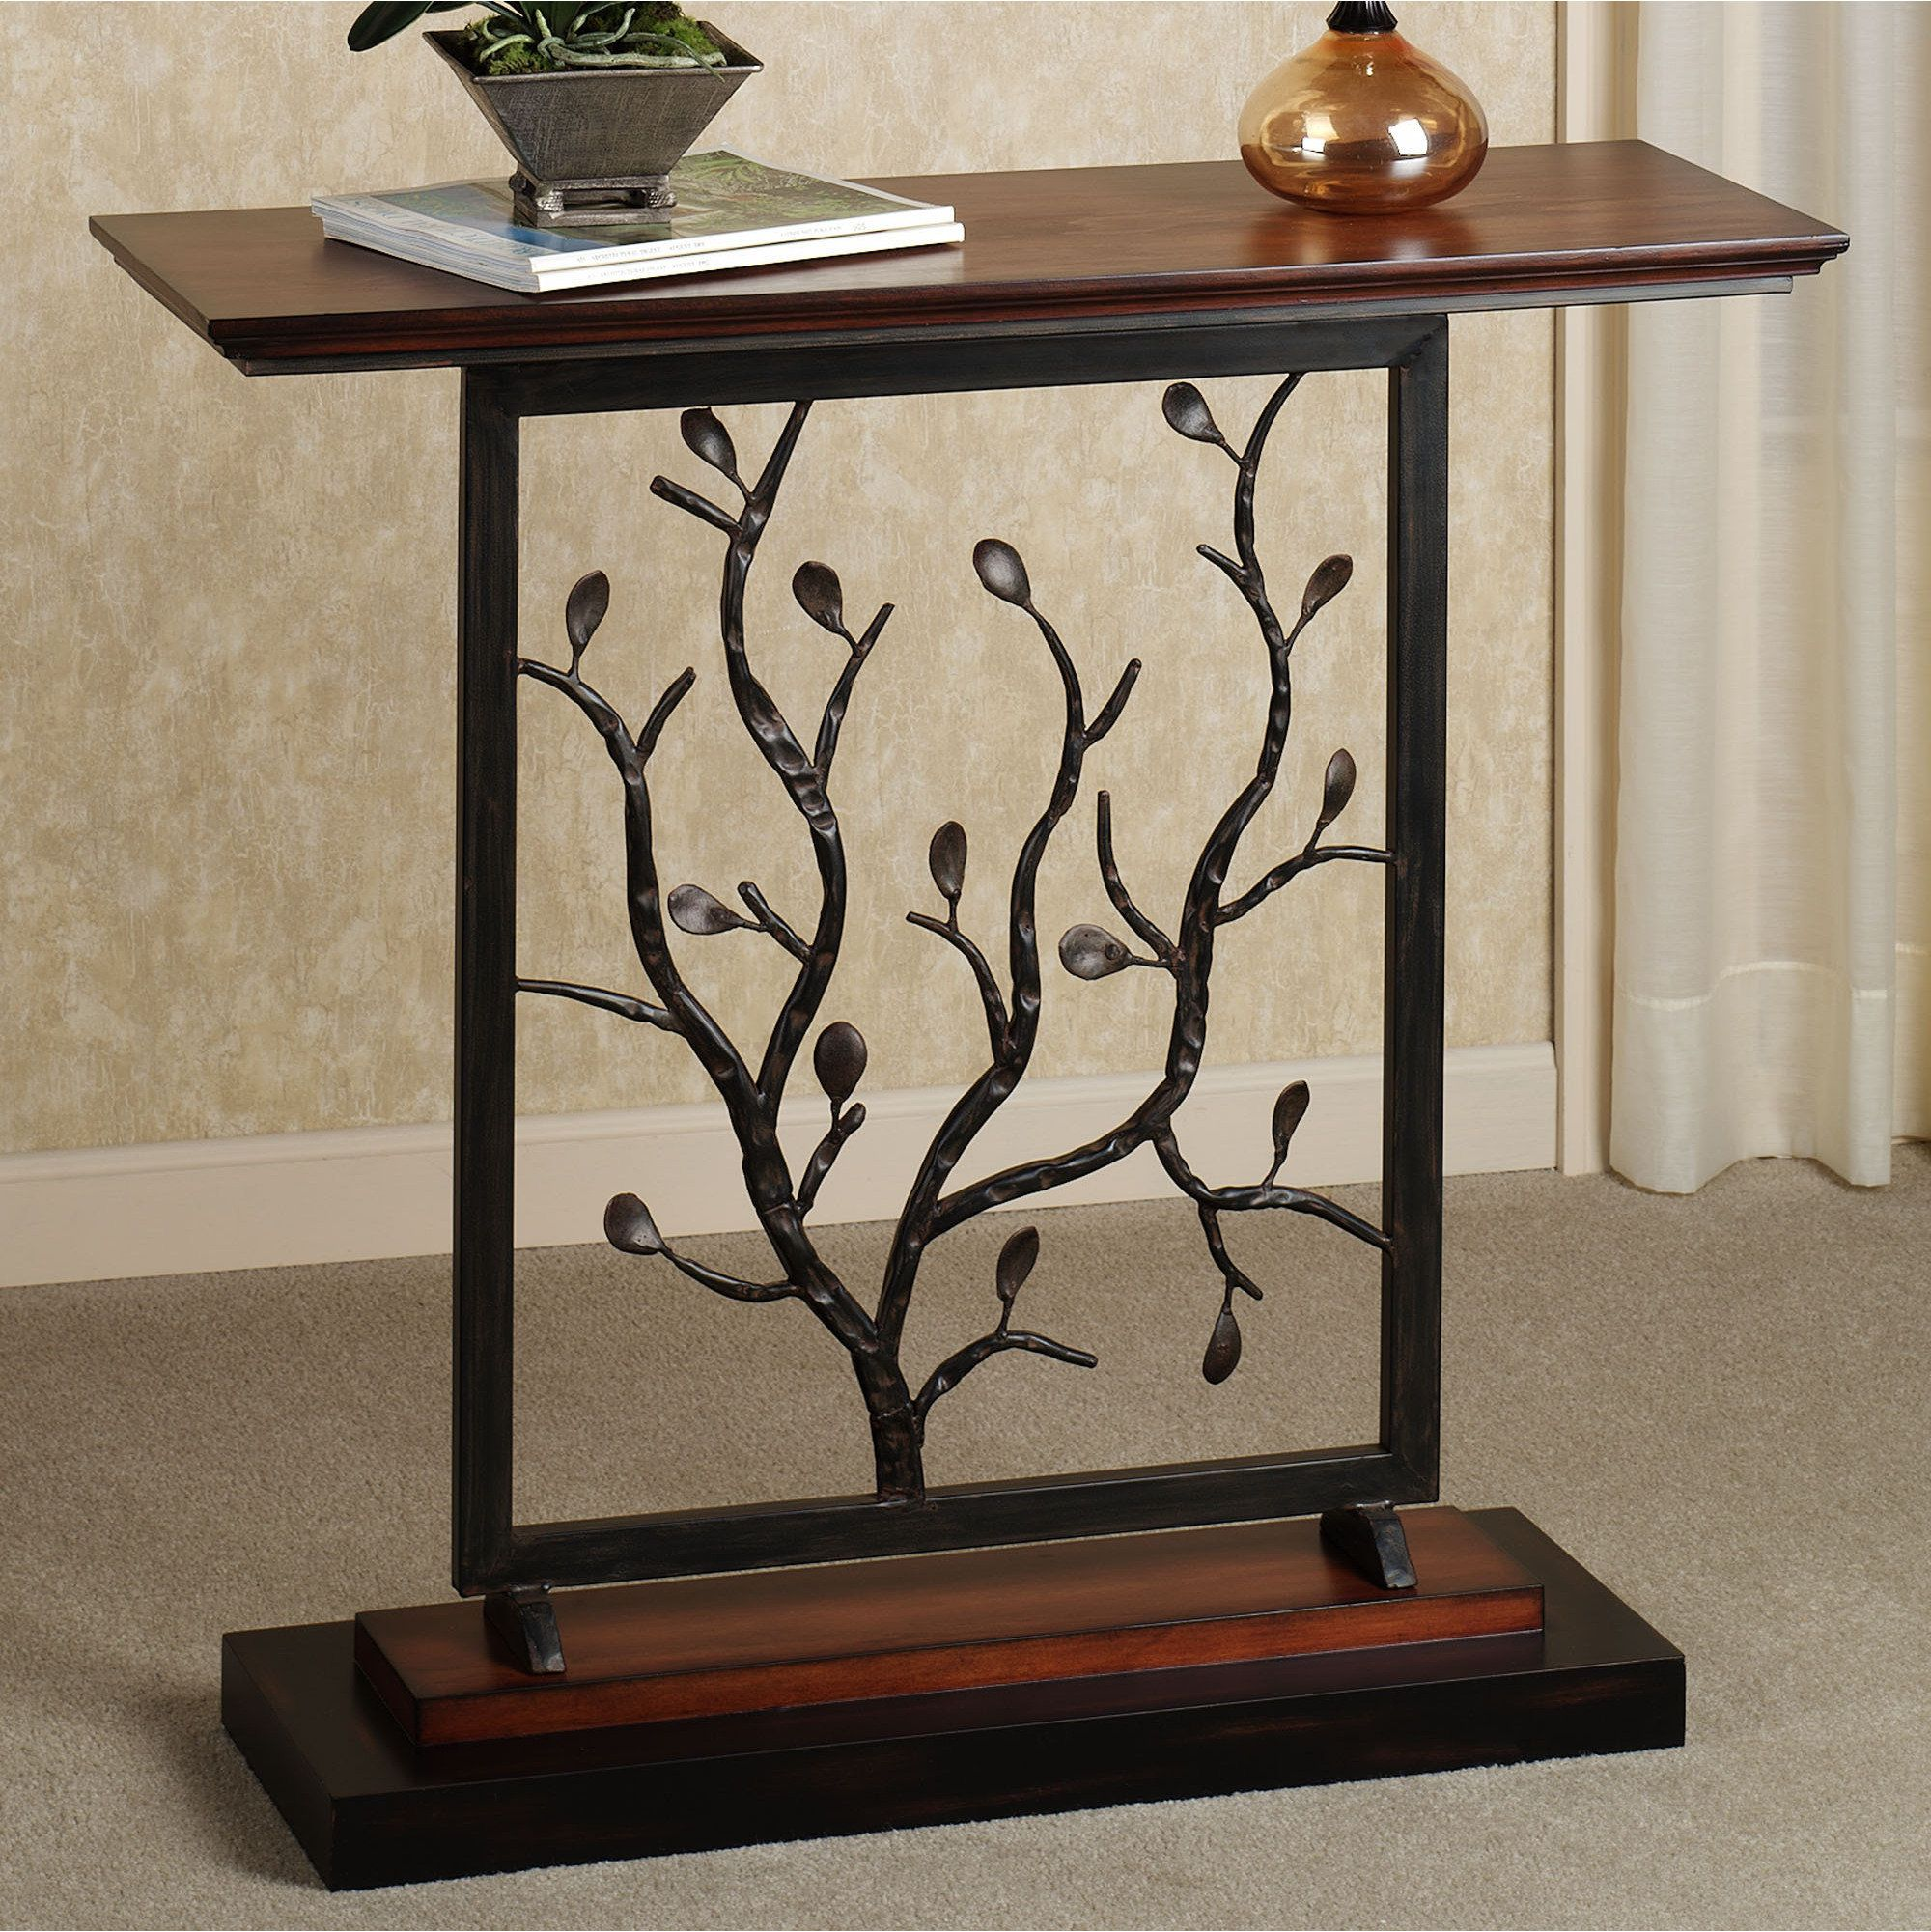 designs decor interior tables small under beautiful decorative design awesome home